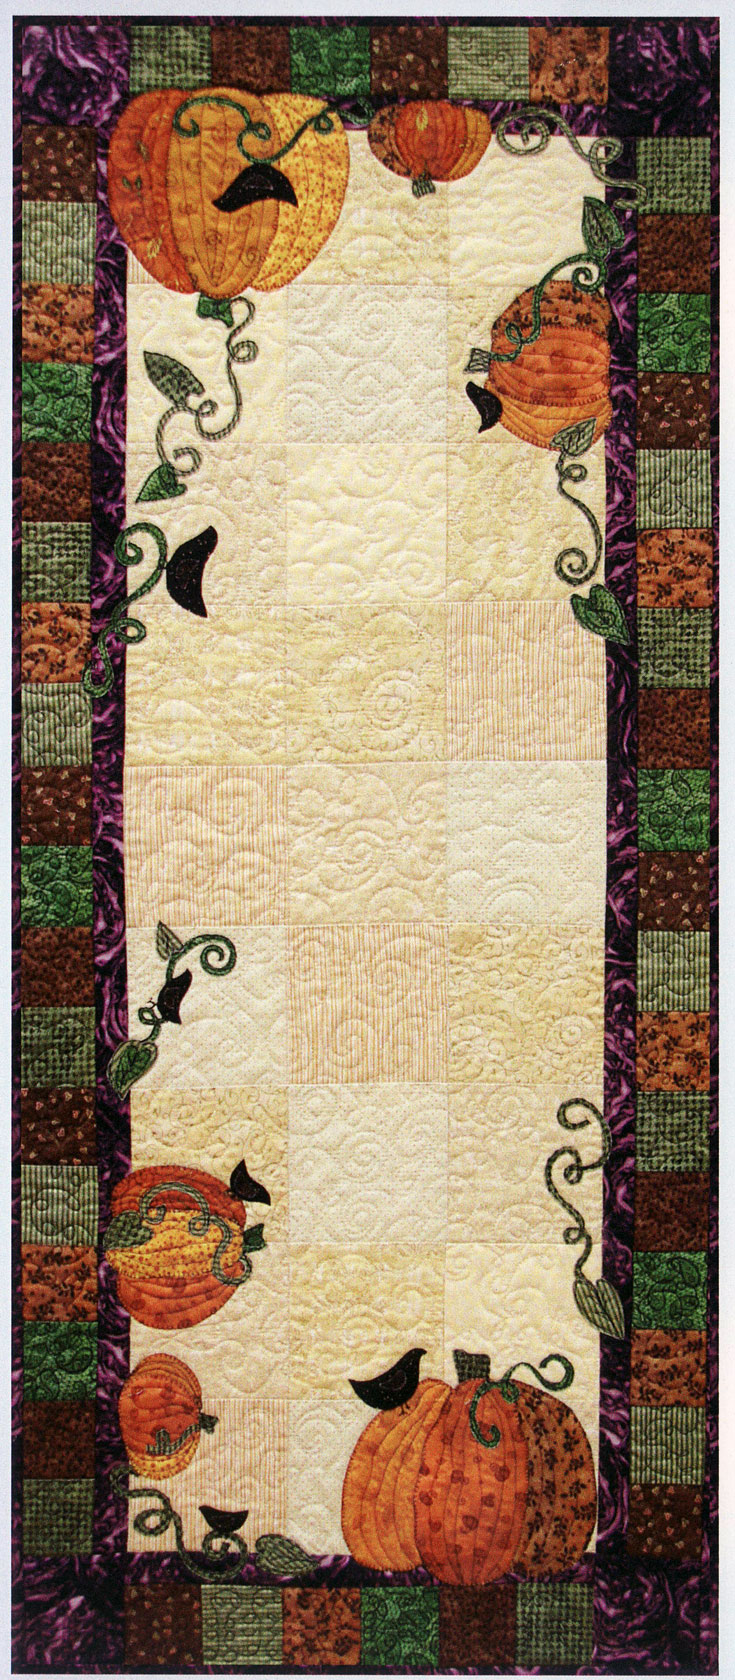 the-great-pumpkin-harvest-sewing-pattern-Saginaw-st-quilts-1